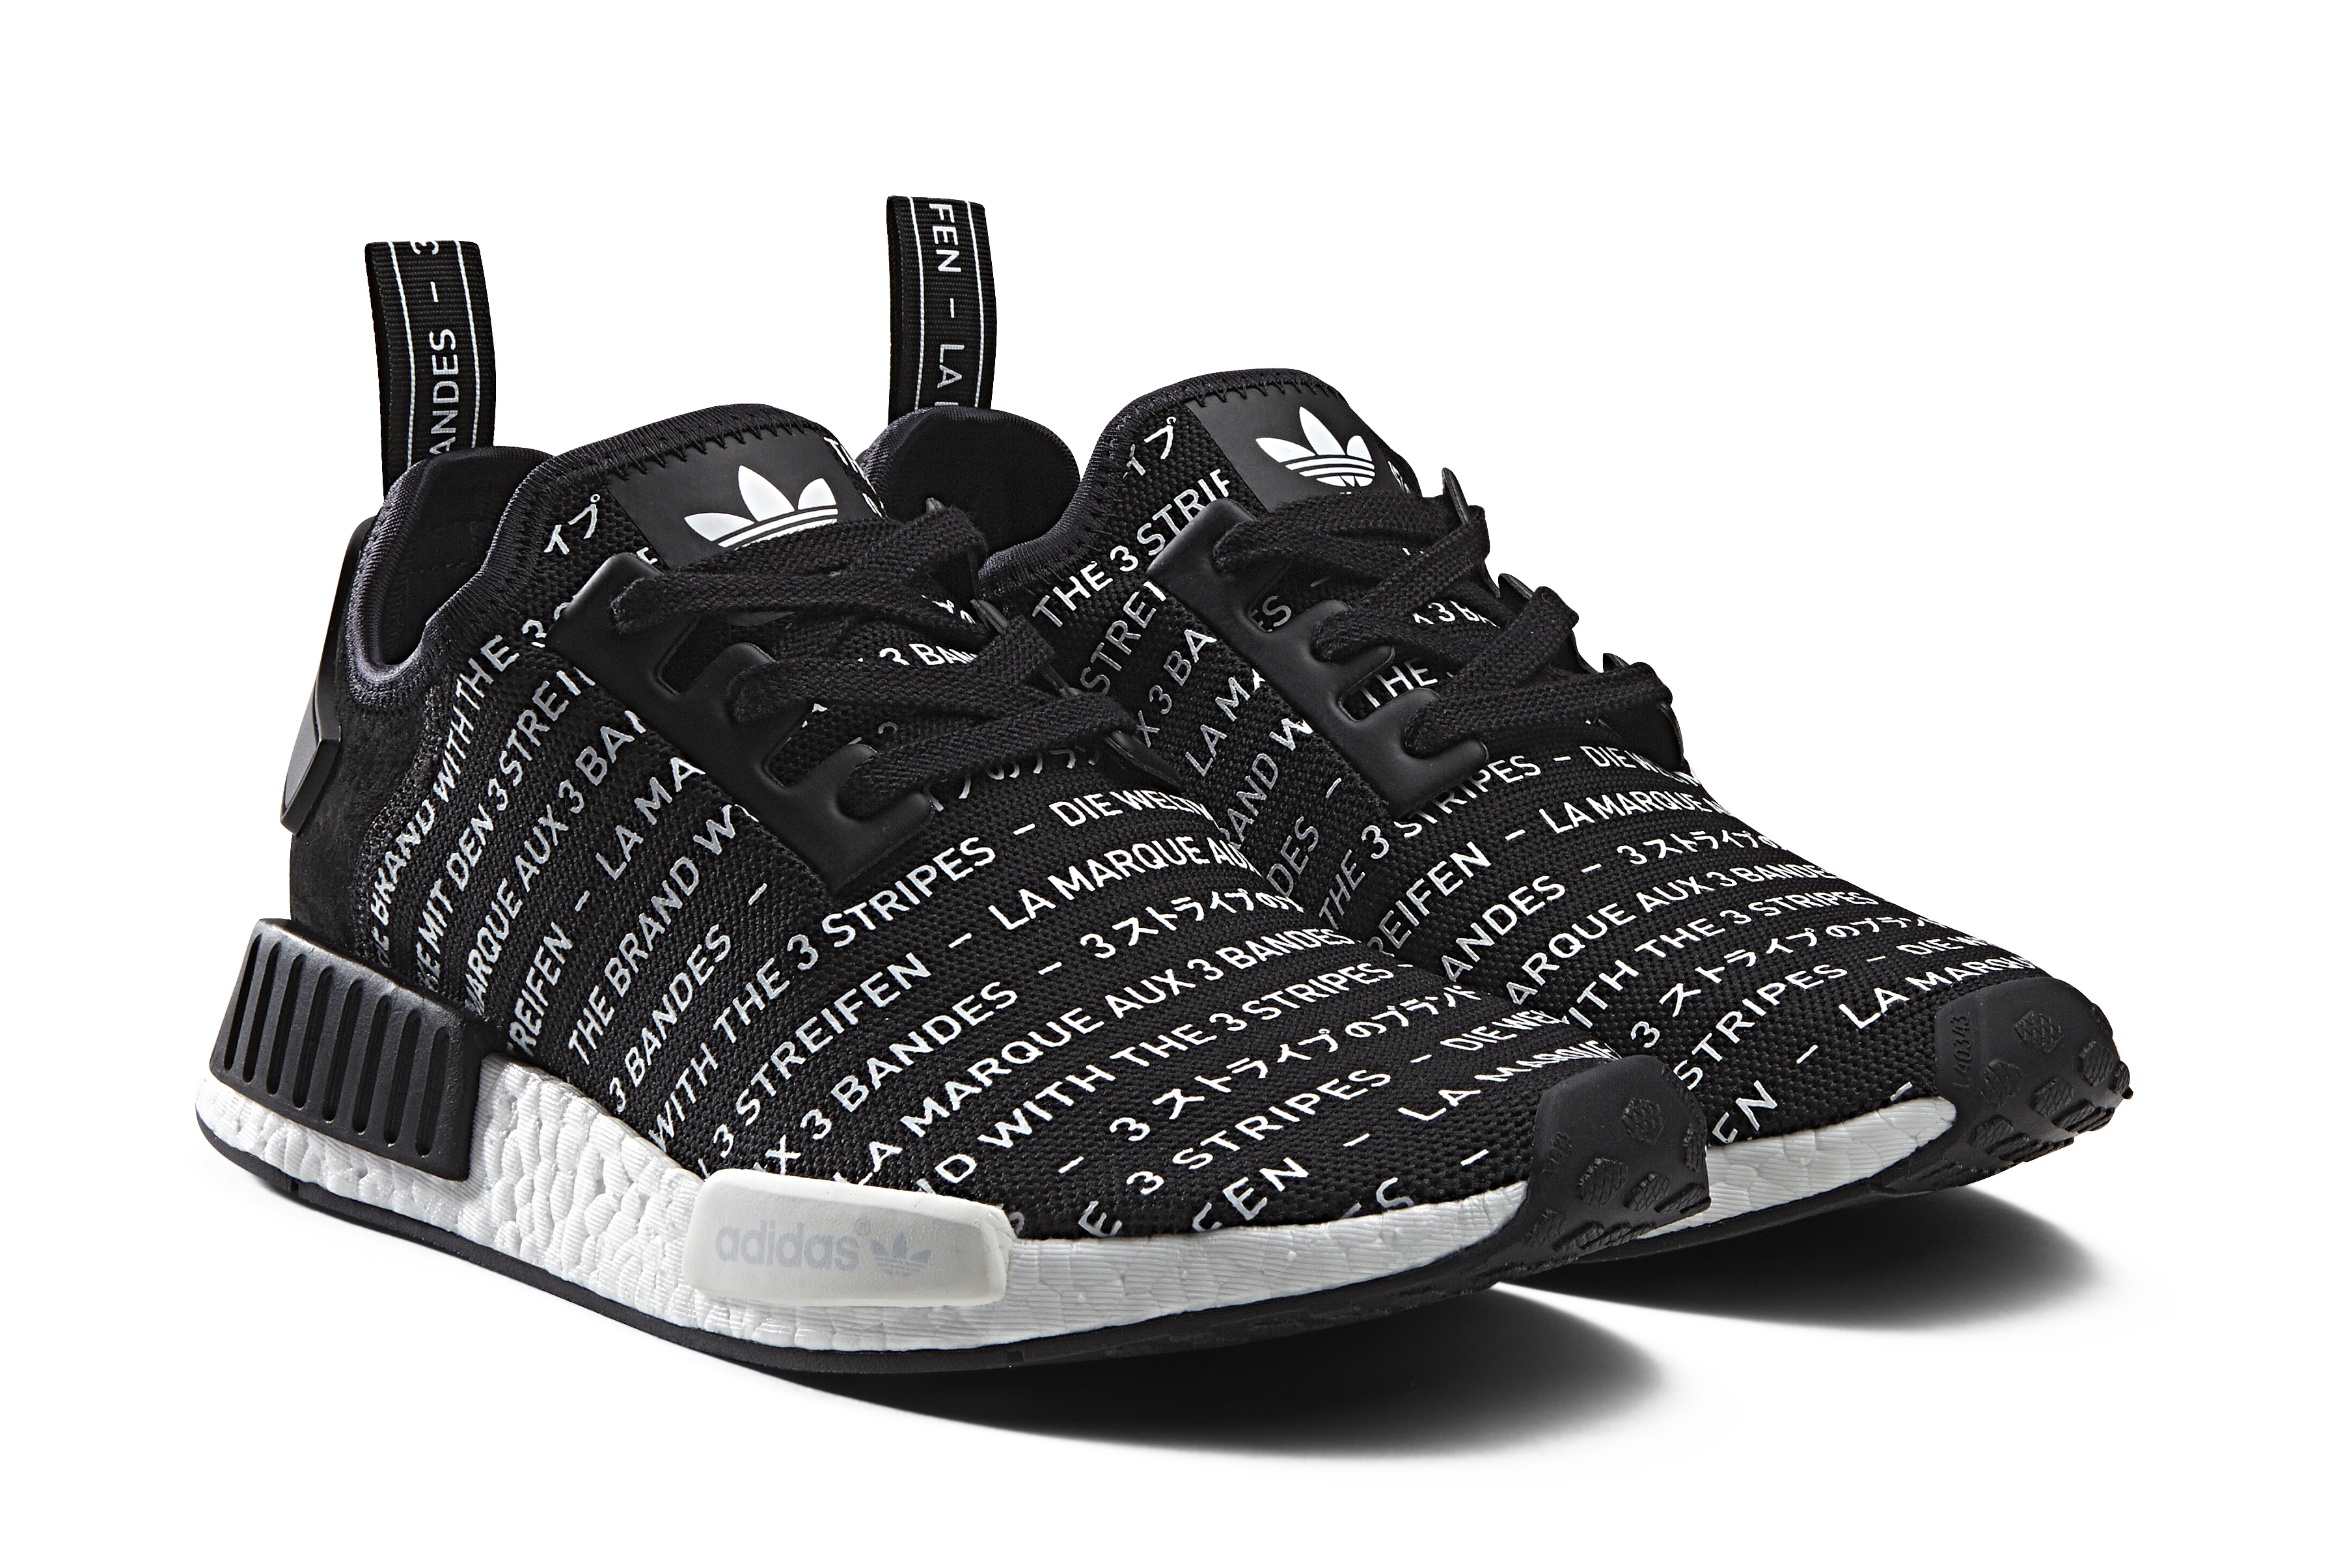 adidas-nmd-blackout-whiteput-pack-2